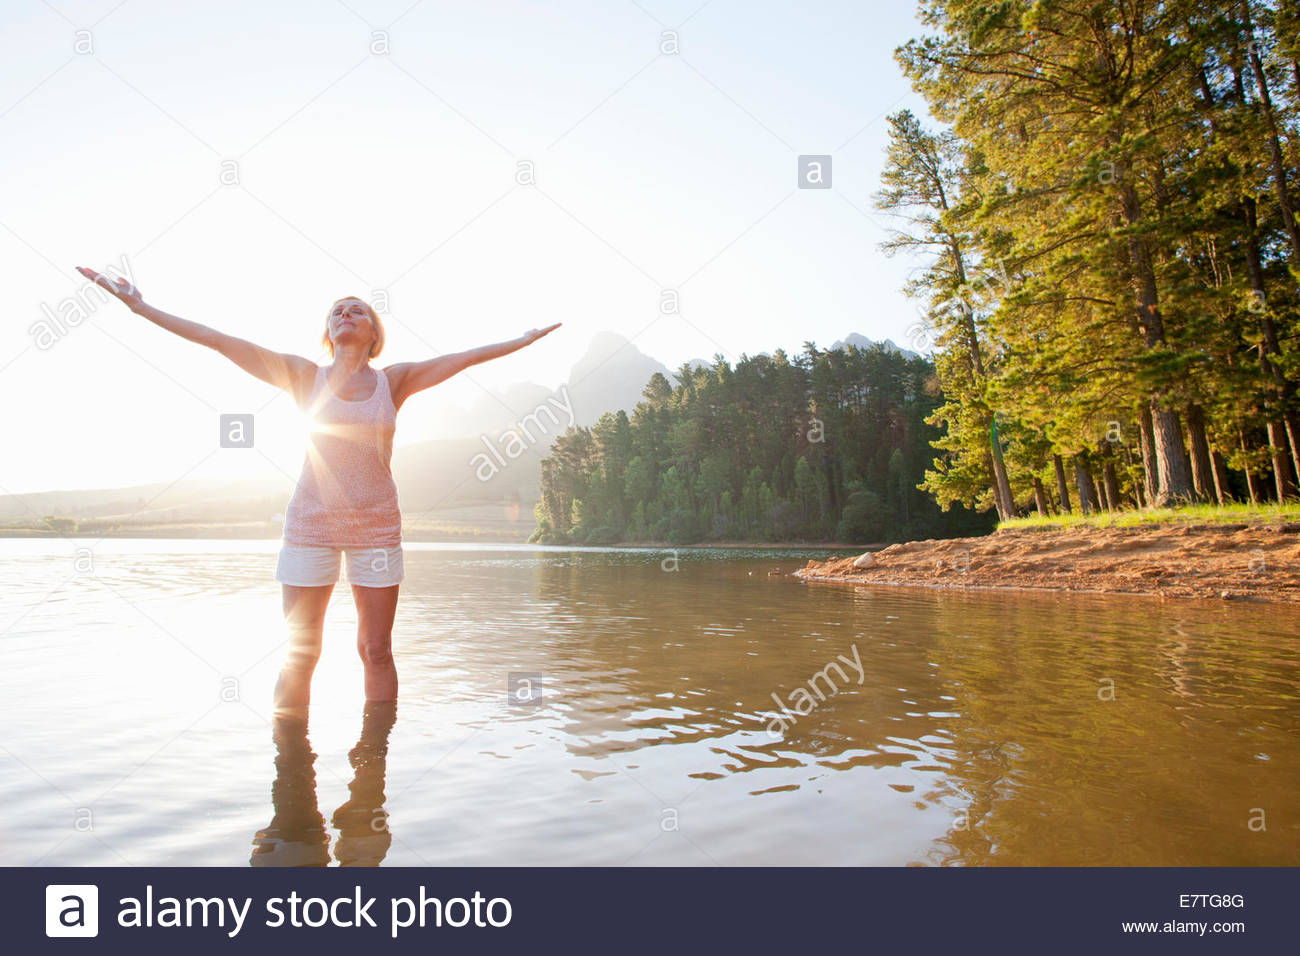 Older woman standing with arms outstretched in lake - Stock Image